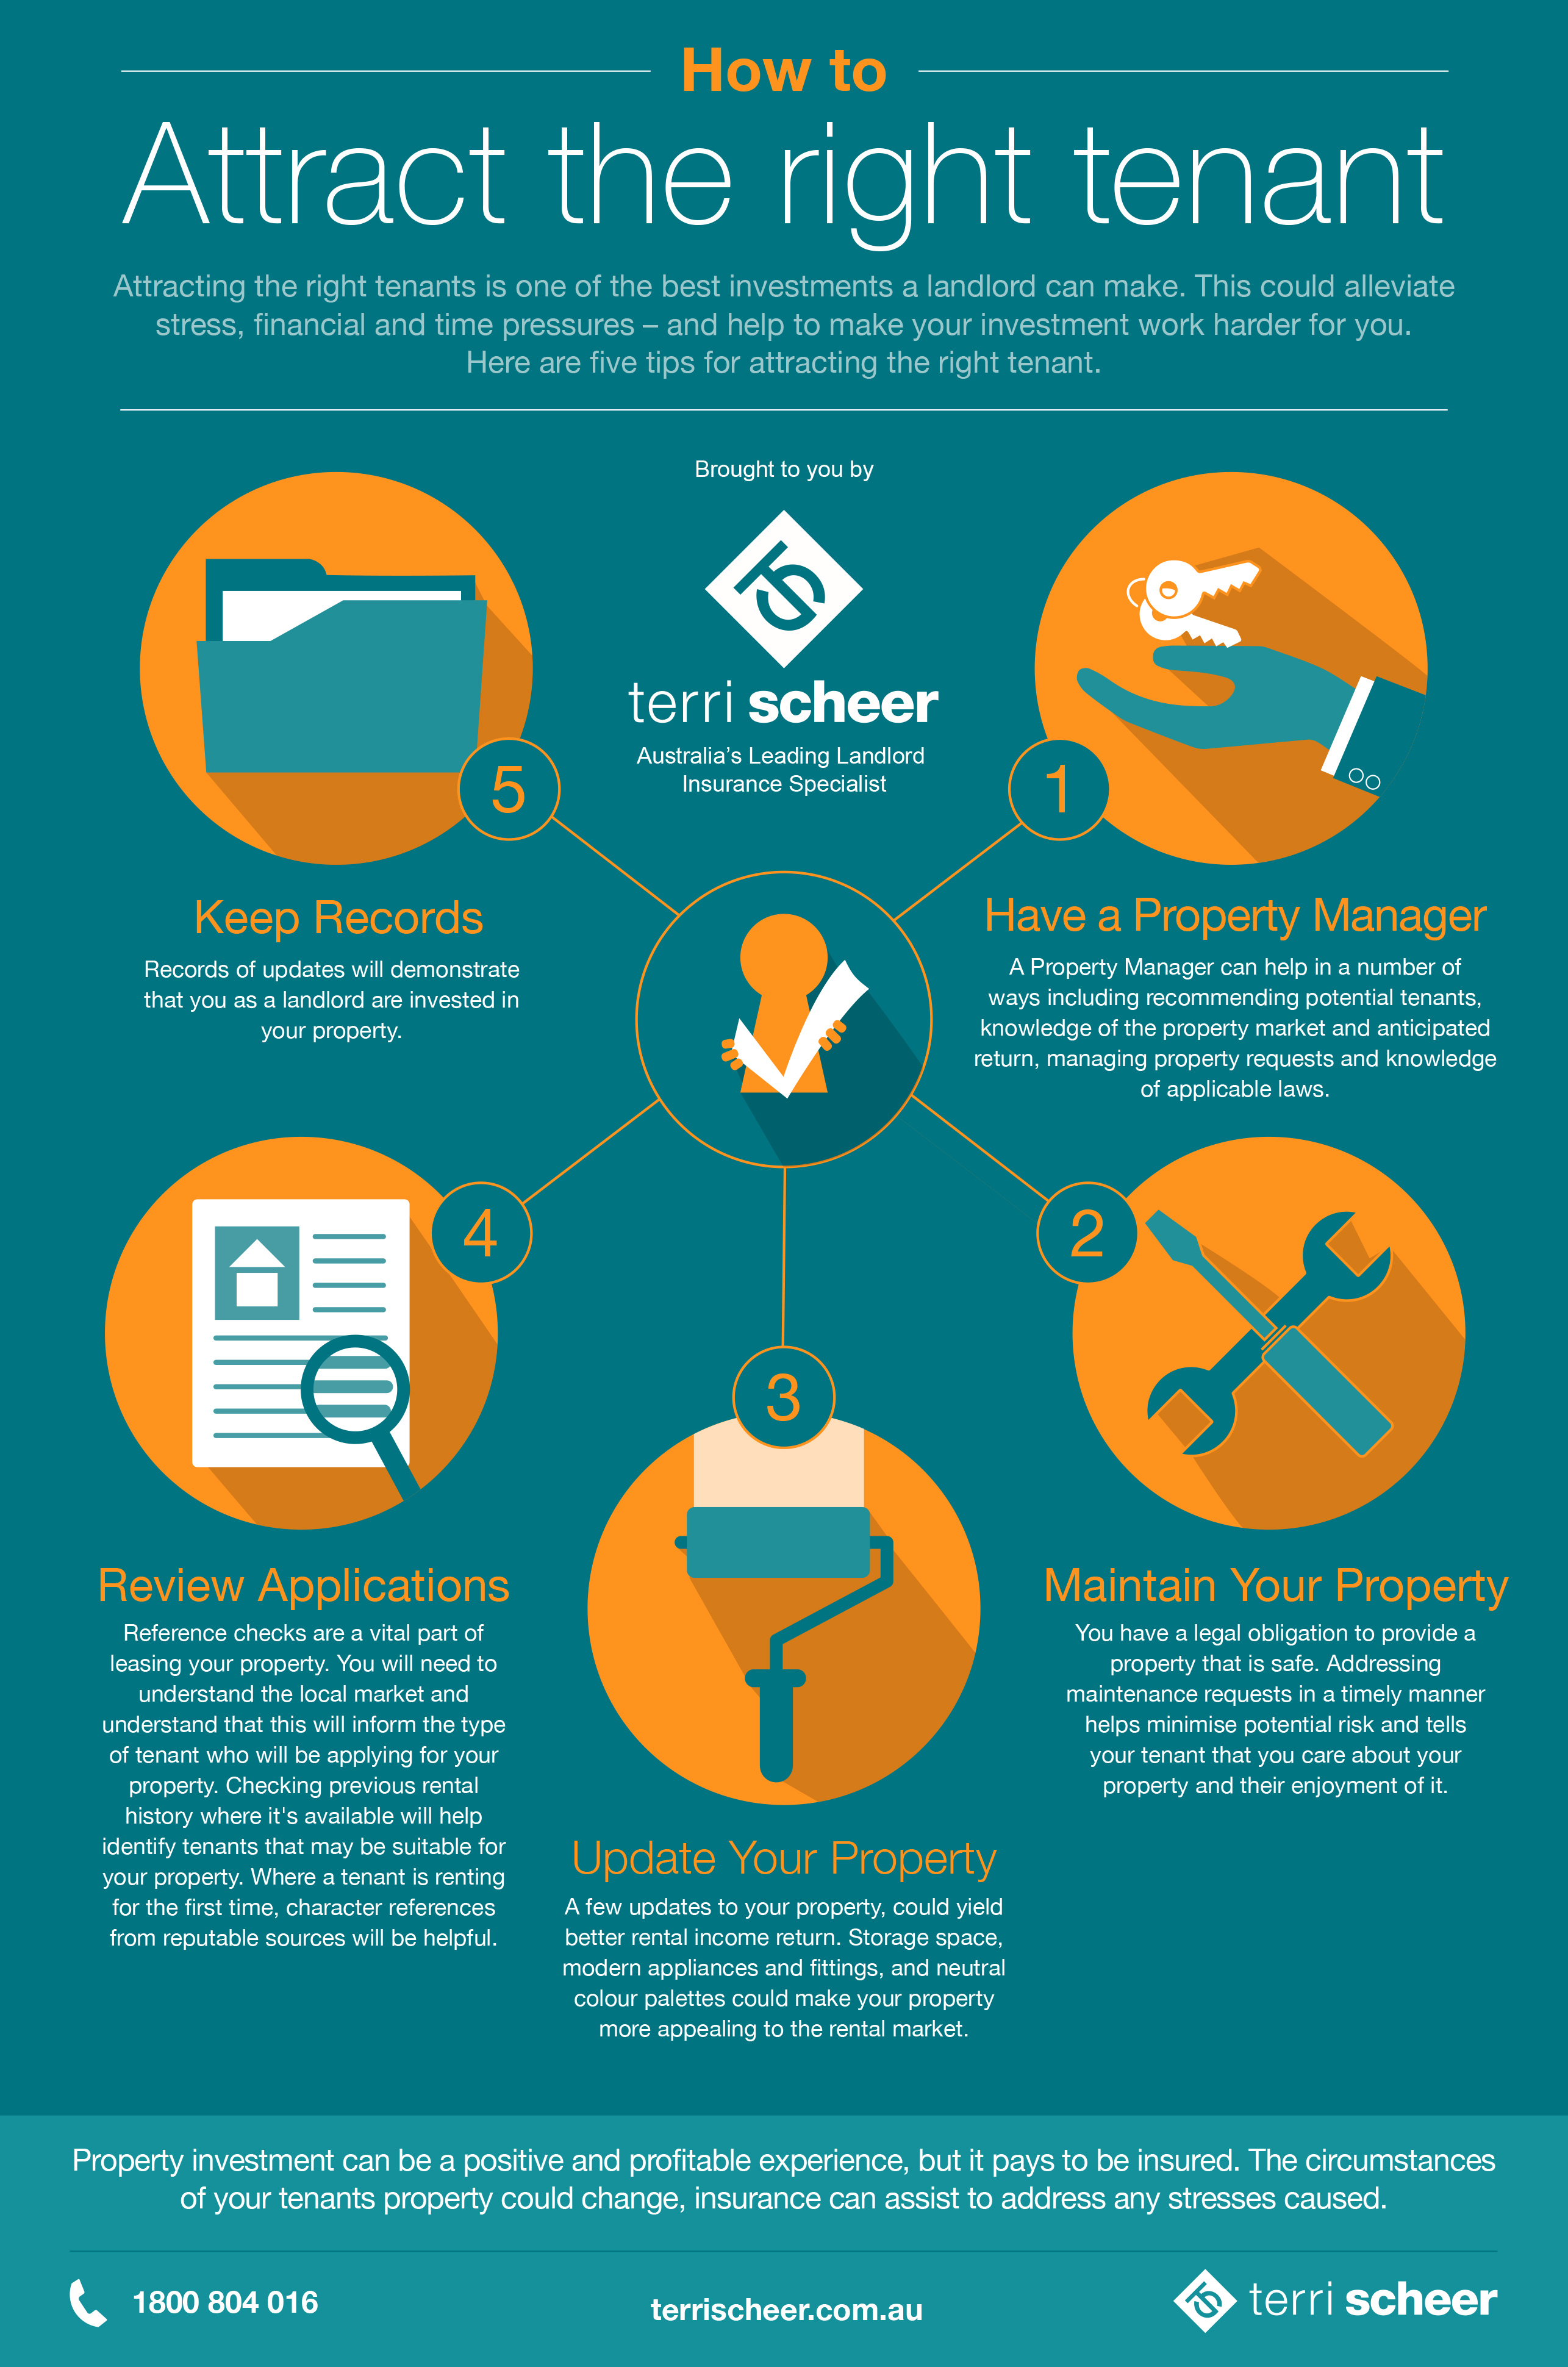 Right Tenant Infographic How to attract the right tenant